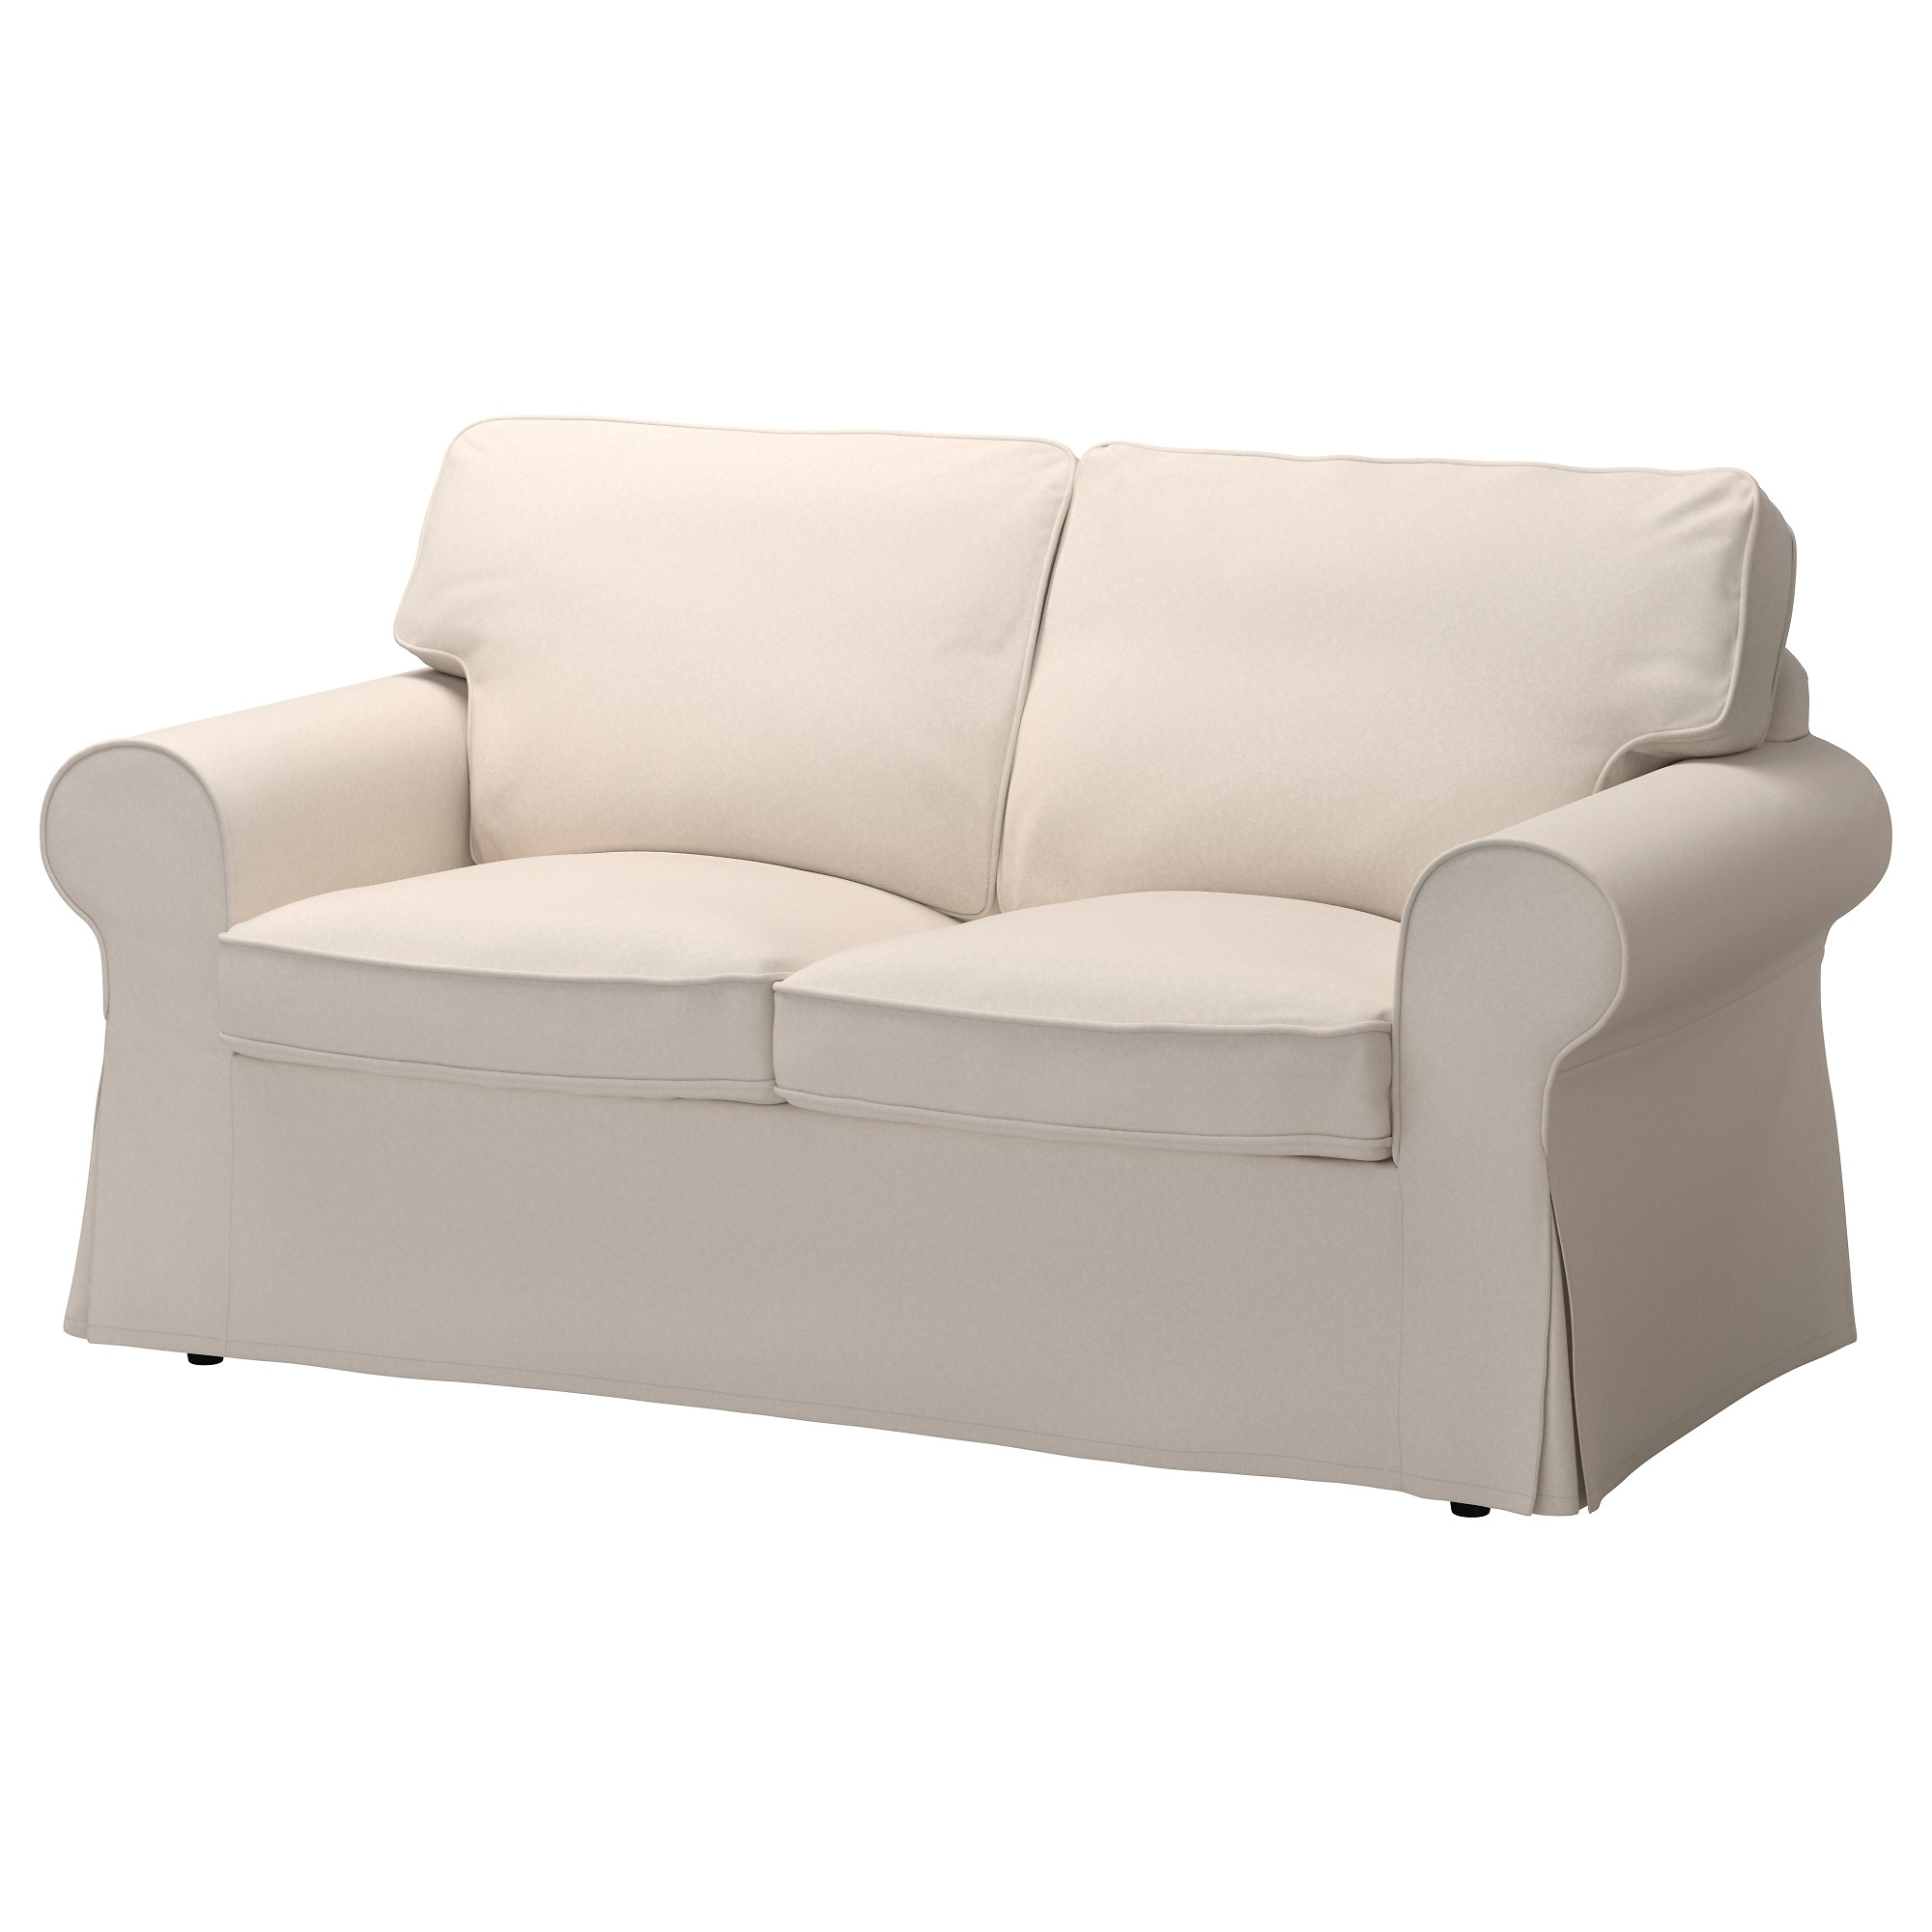 EKTORP Loveseat Lofallet Beige IKEA - Love seat and sofa